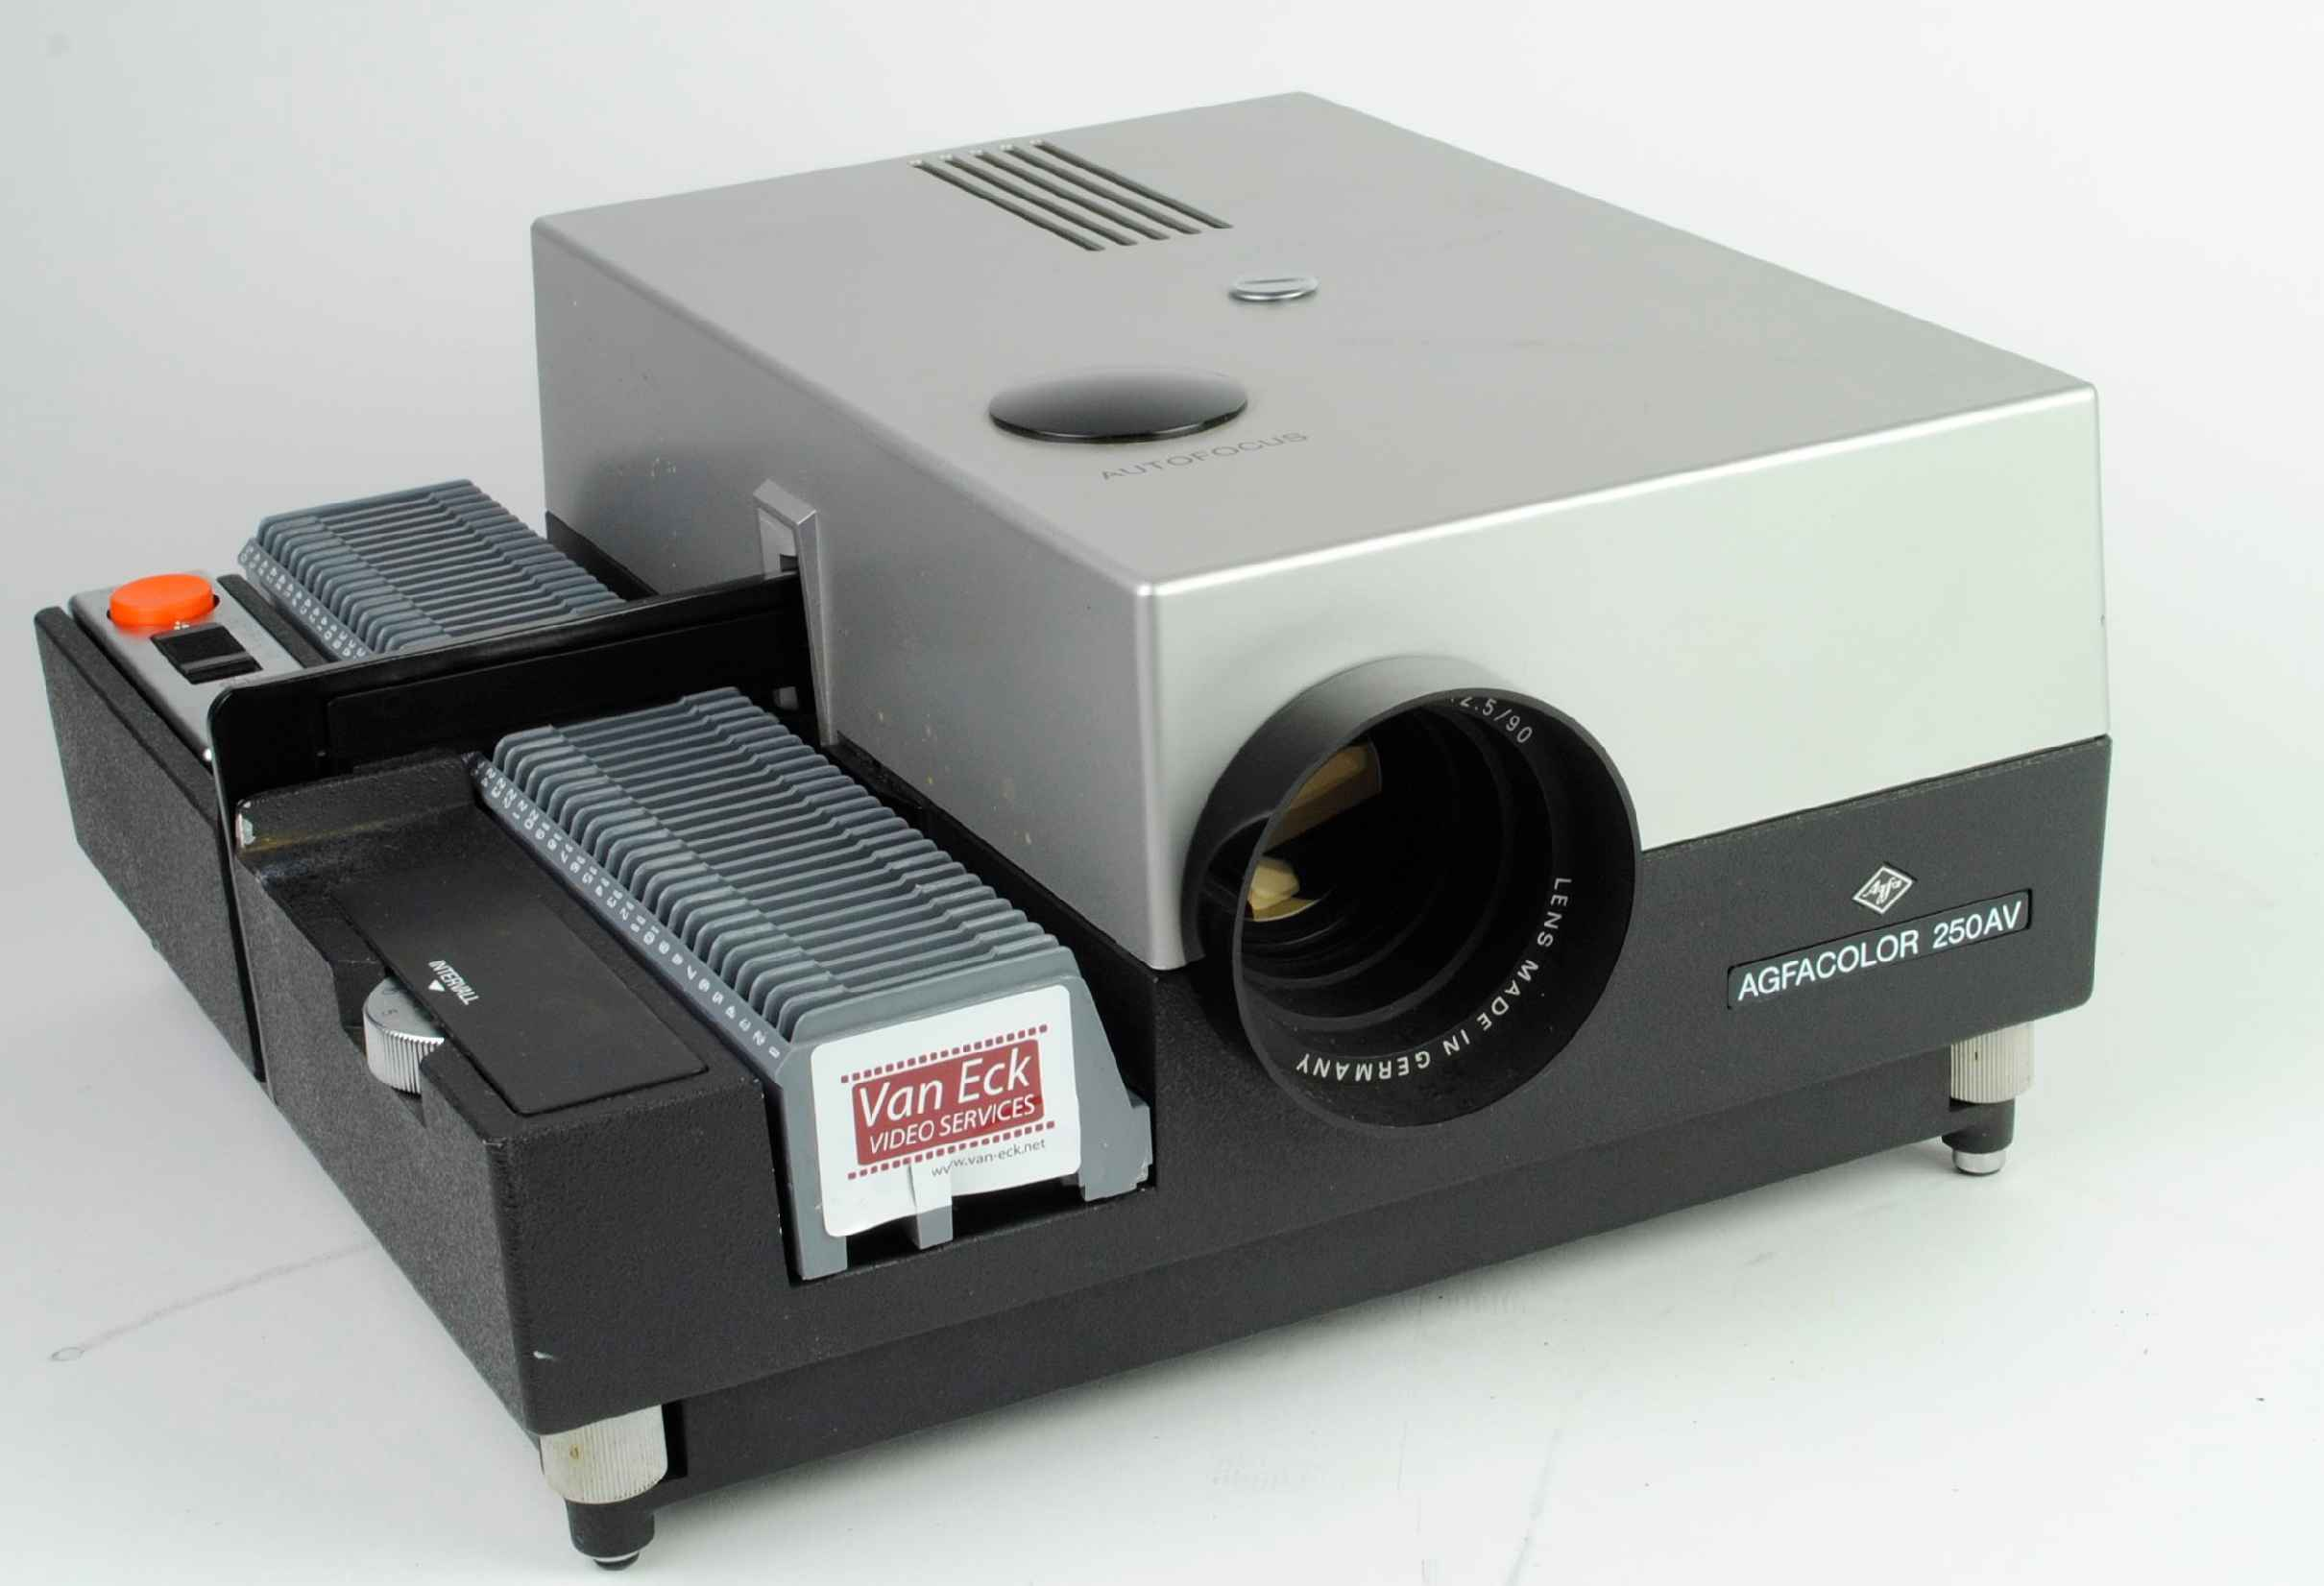 Agfa agfacolor 250av slide projectors spare parts and for Best pocket size projector